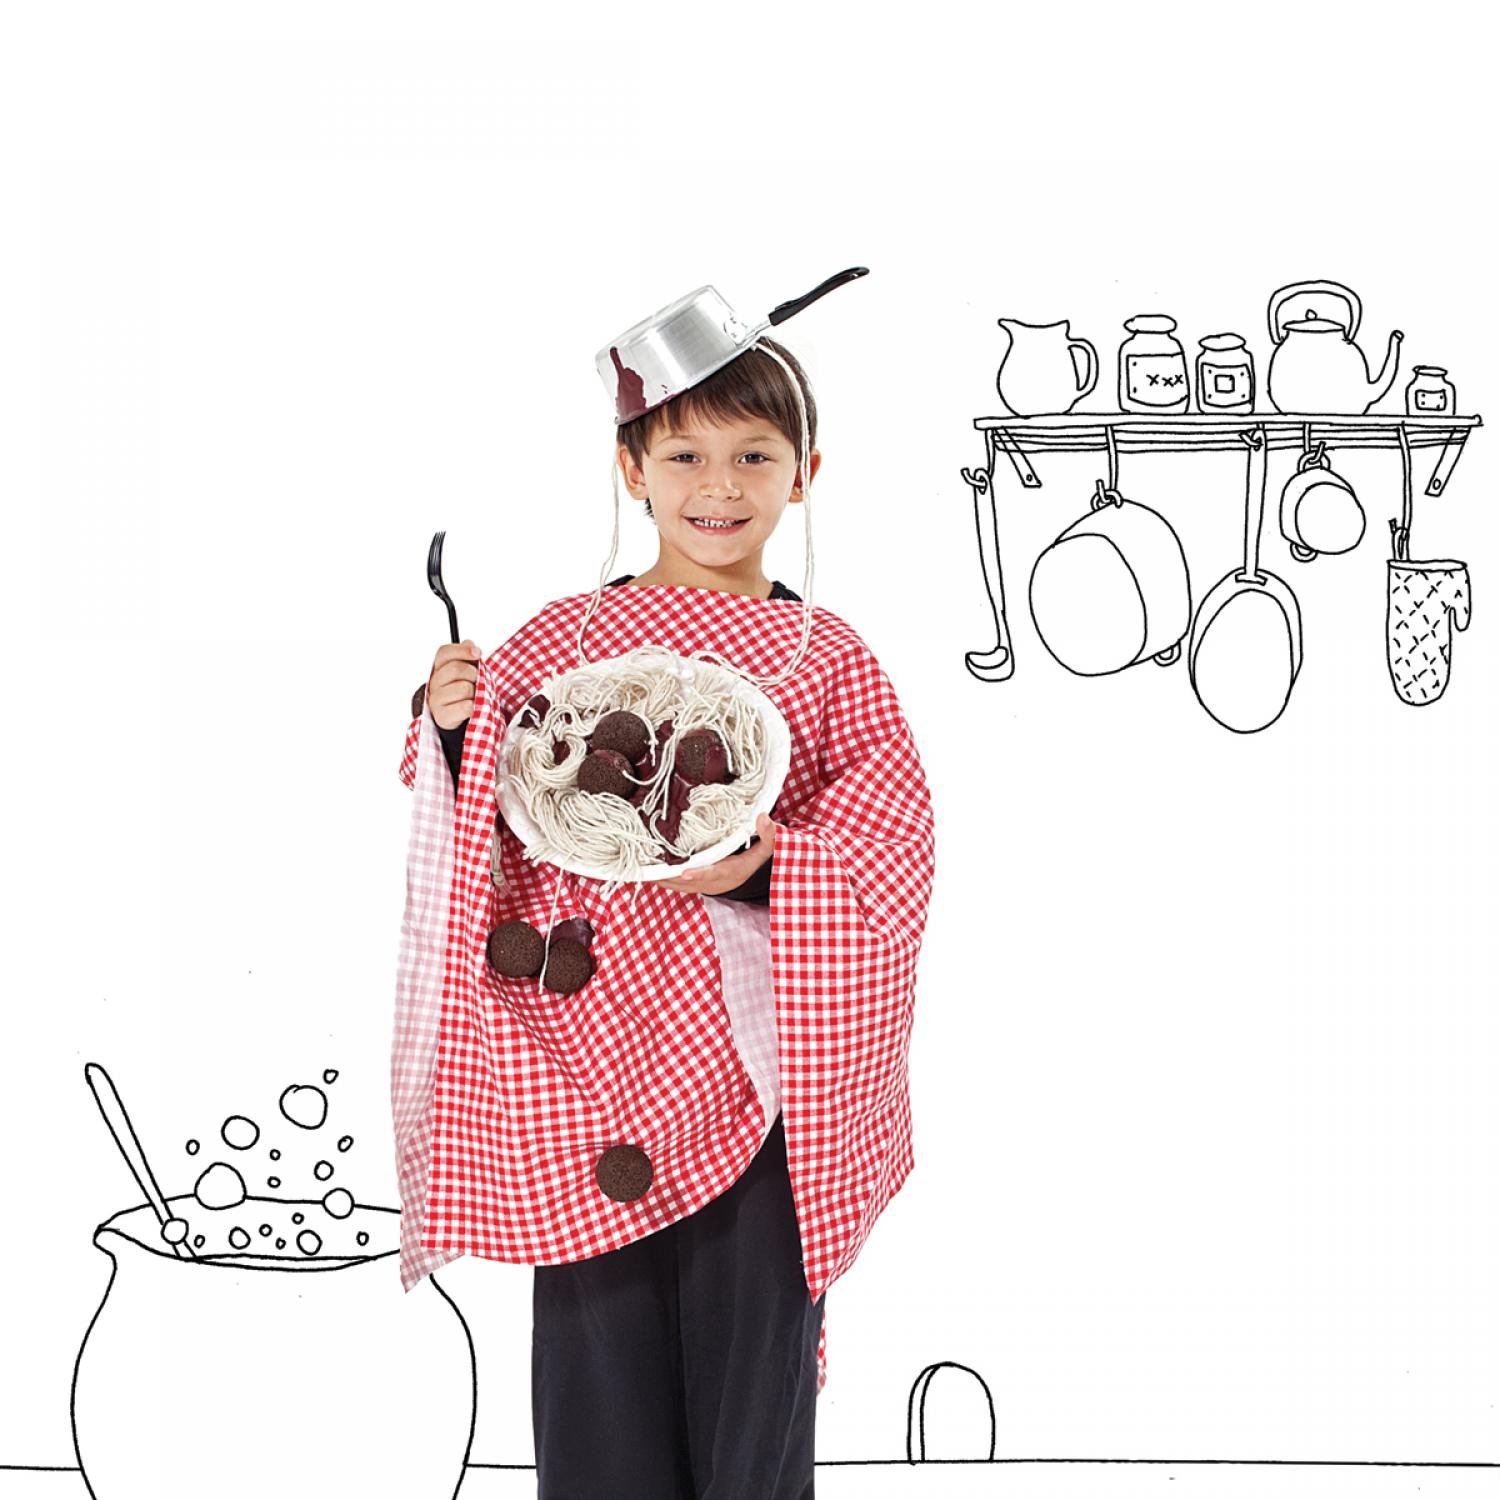 35+ Easy Homemade Halloween Costumes for Kids Parenting - Simple Halloween Costumes